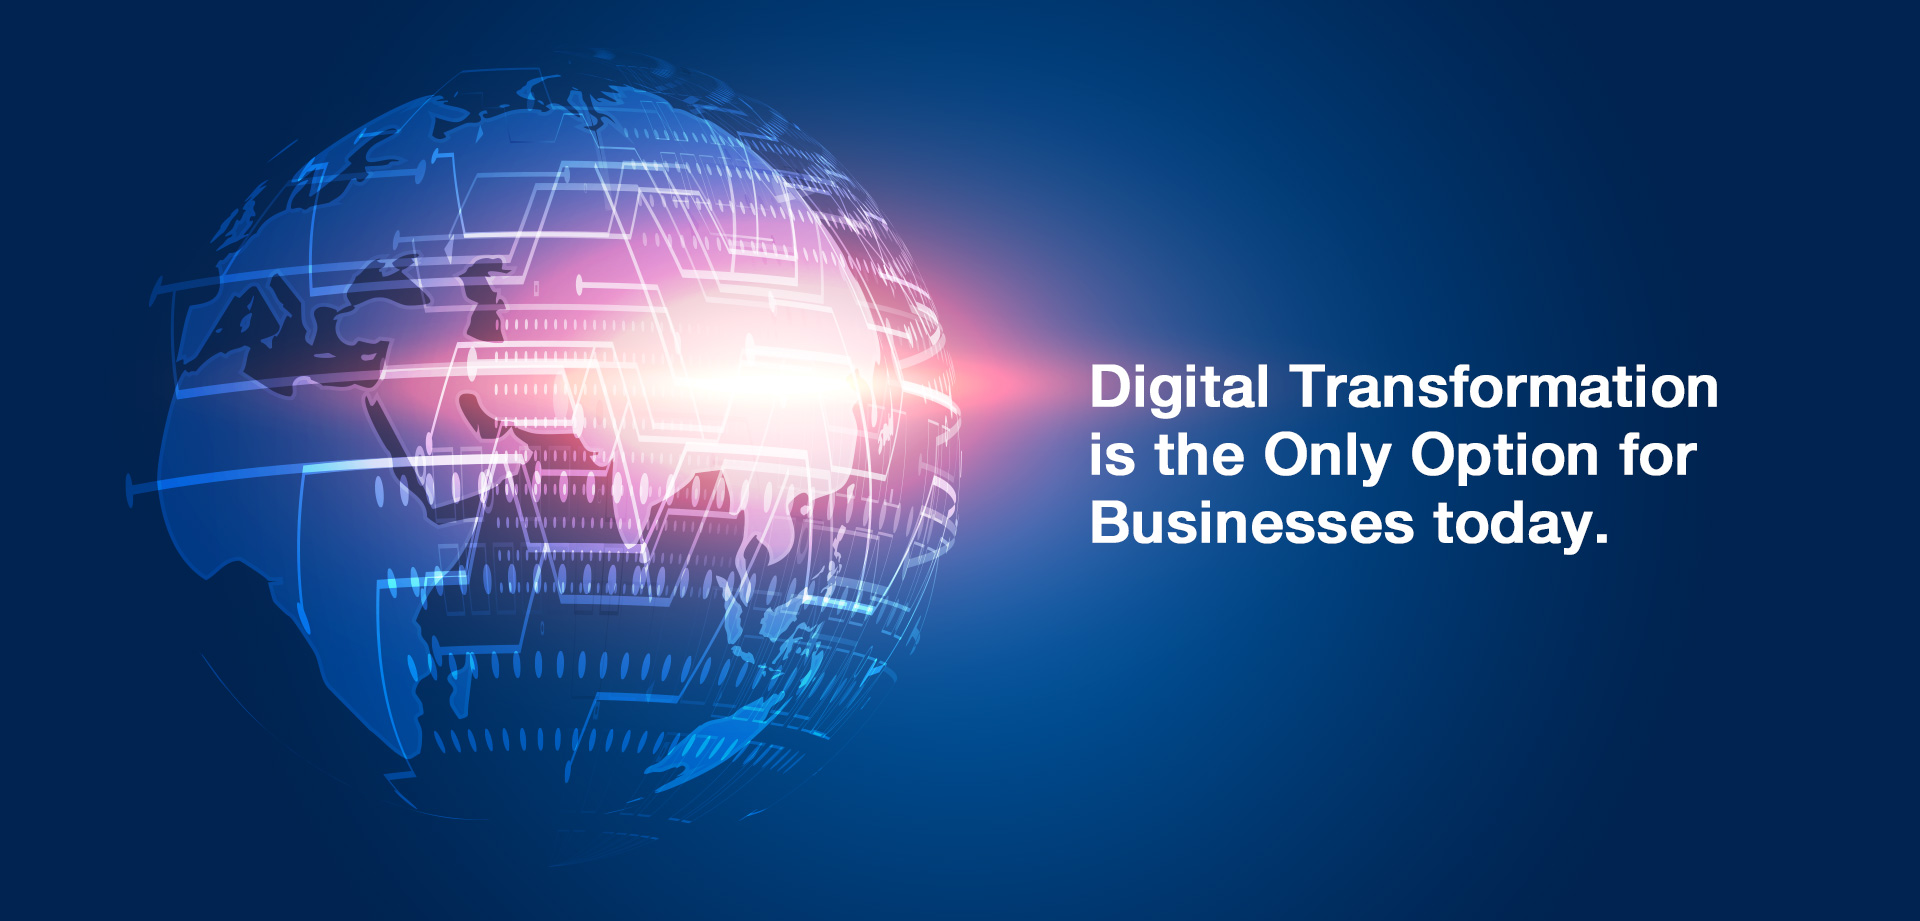 Digital Transformation is the Only Option for Businesses today.